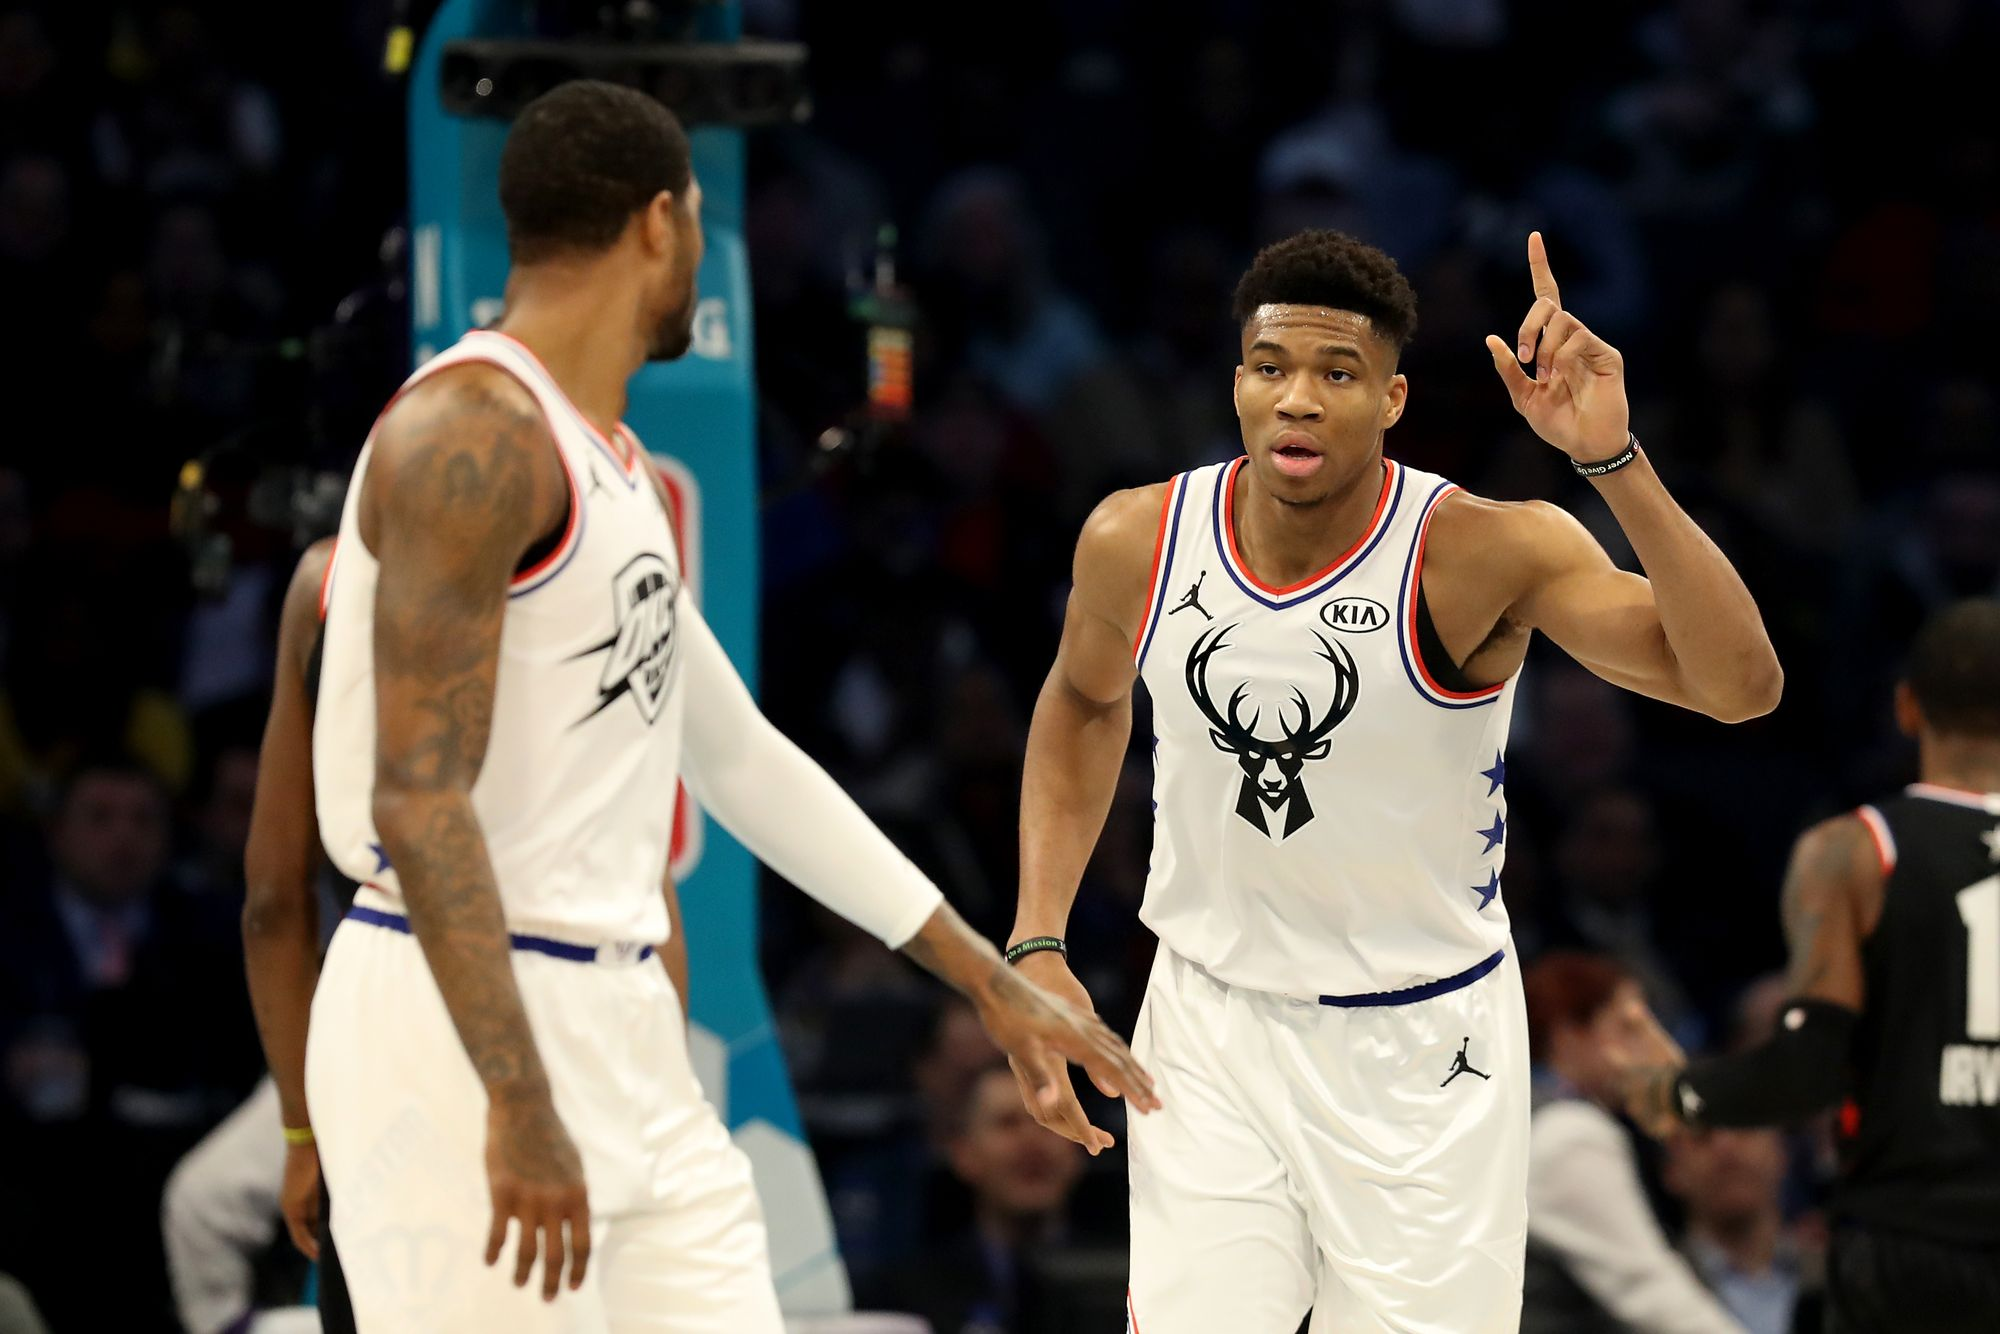 The Top Takeaways from the 2019 NBA All-Star Weekend